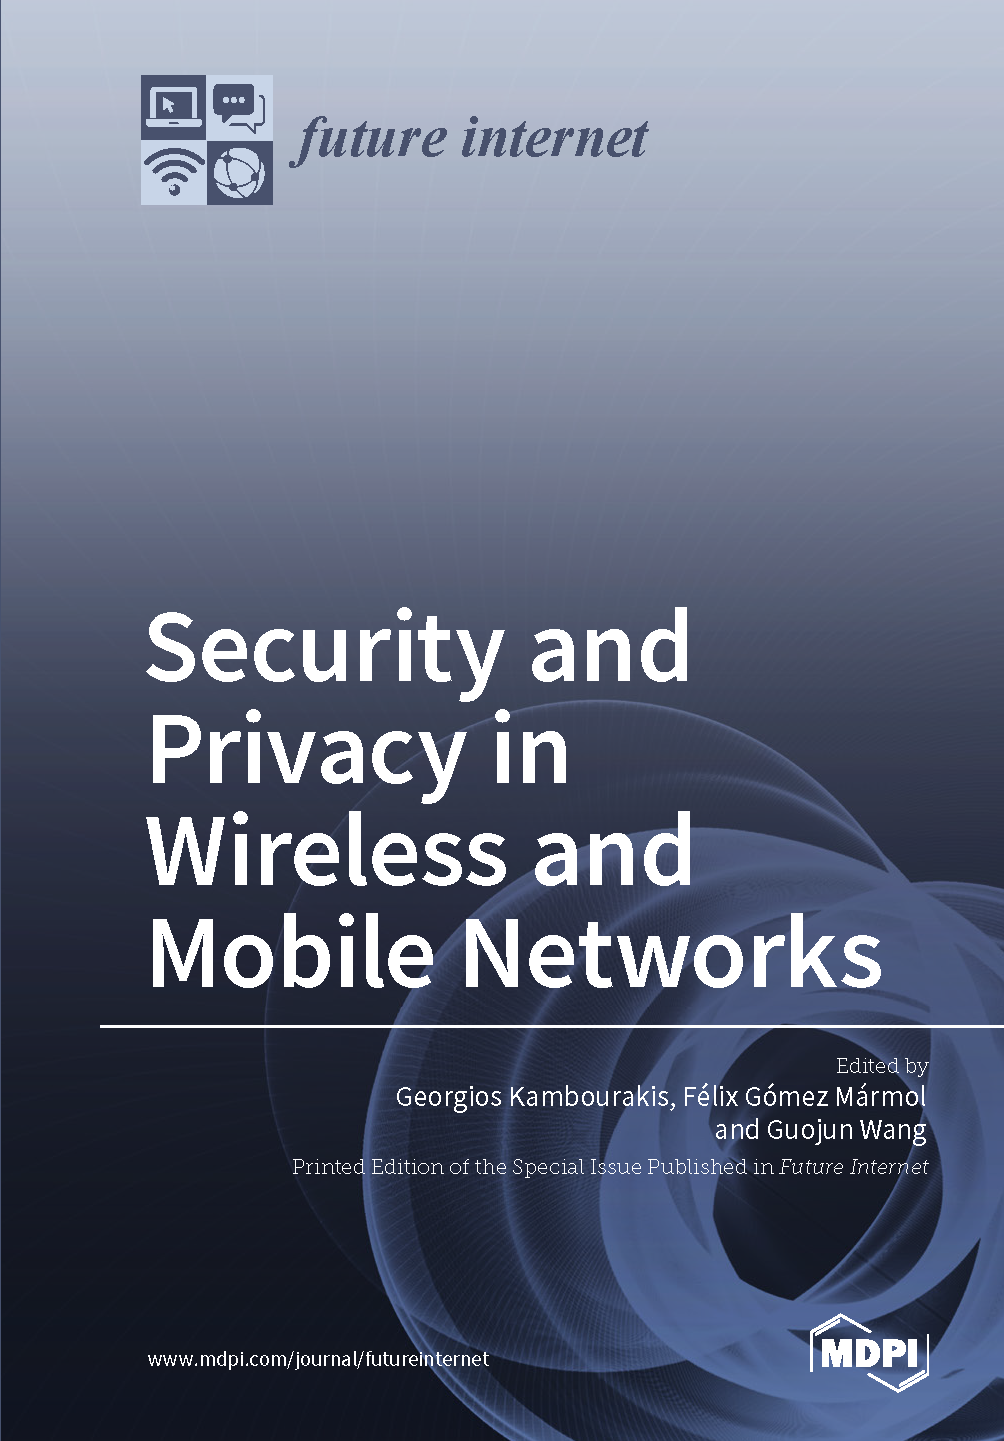 Security and Privacy in Wireless and Mobile Networks